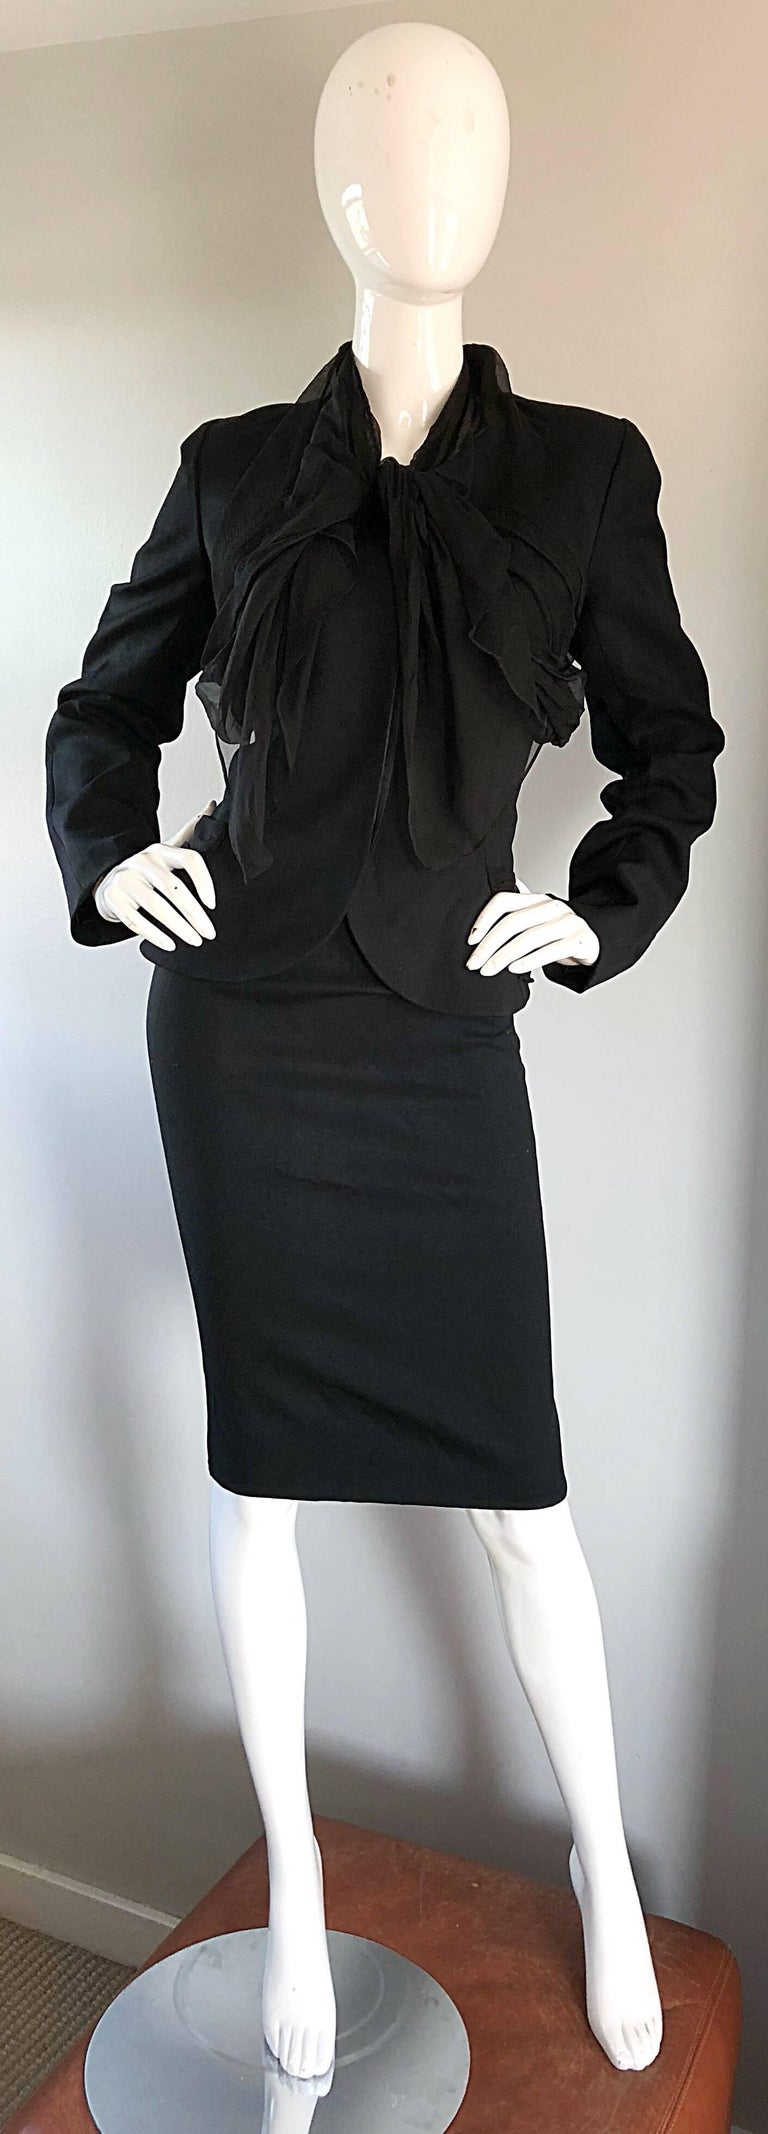 Chic early 2000s Does 40s black JOHN GALLIANO virgin wool and silk chiffon skirt suit! Features a soft black virgin wool, with Avant Garde black silk chiffon Bonnie and Clyde detail at neck and waist. Hidden buttons up the front blazer bodice. High